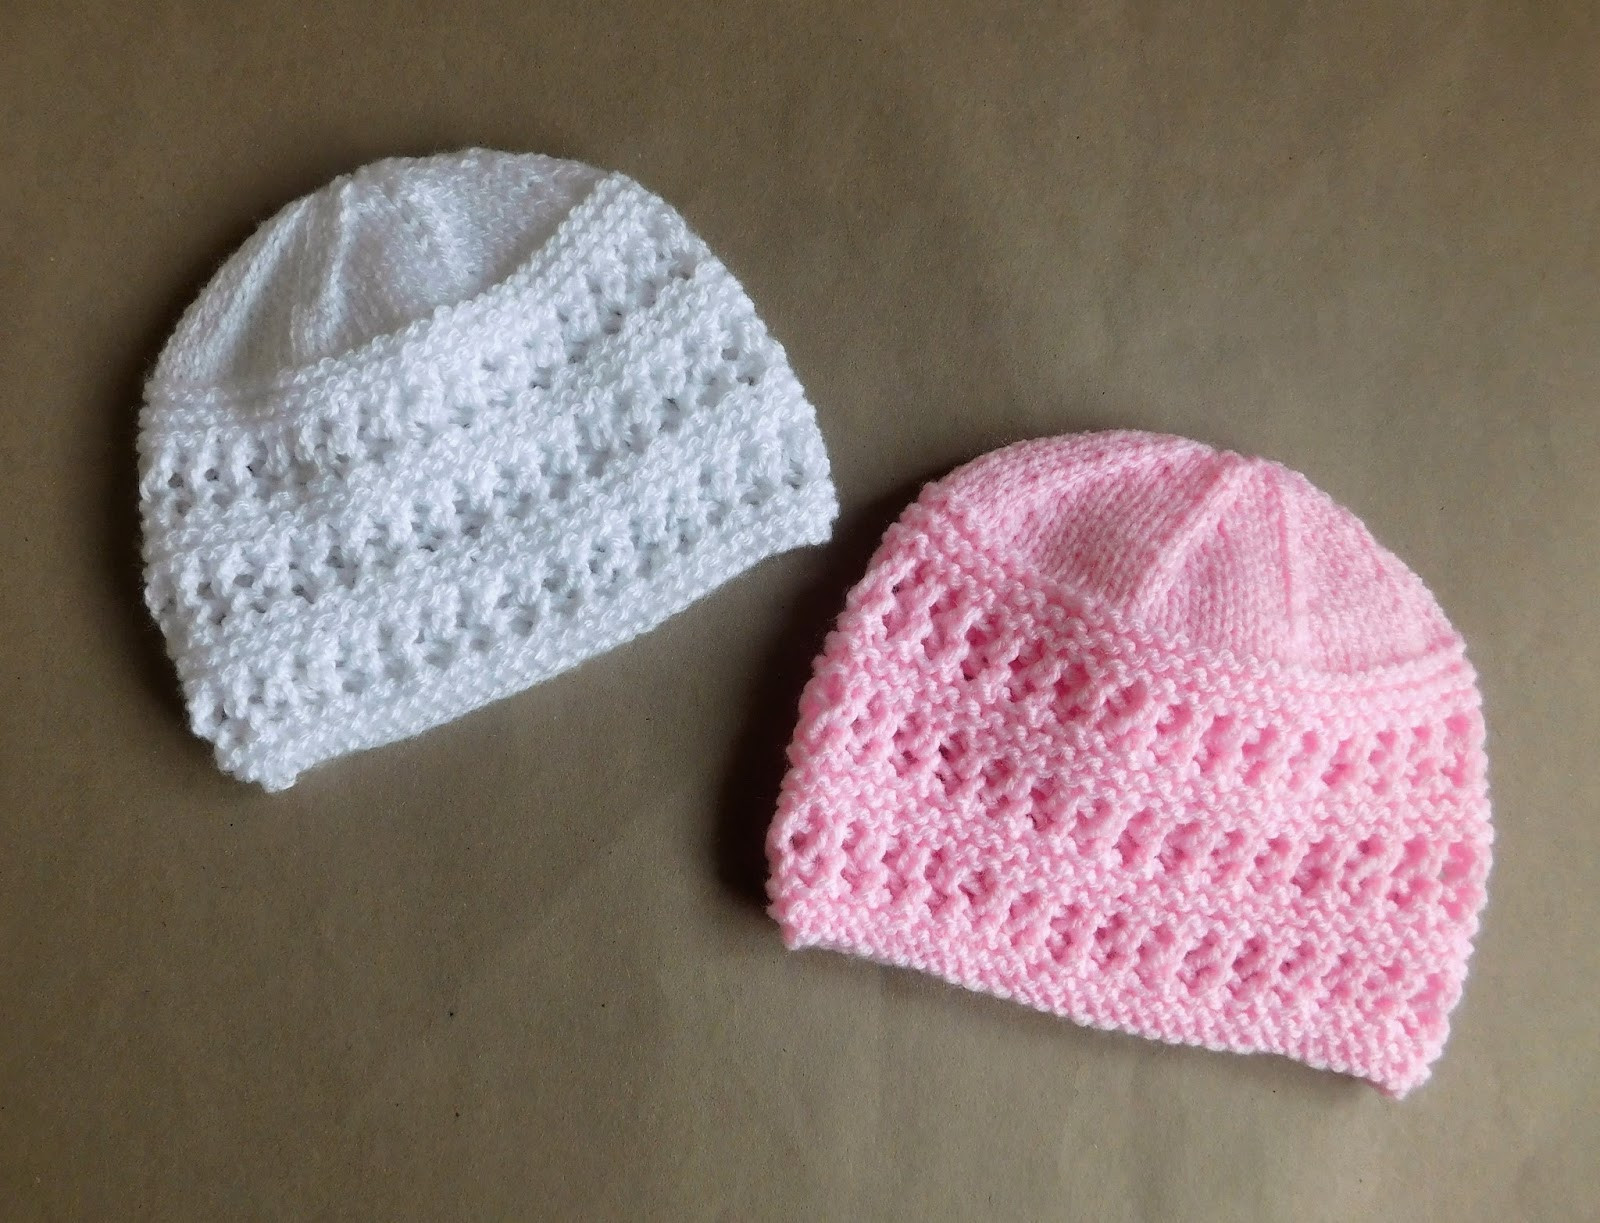 New Marianna S Lazy Daisy Days Jasmine Baby Hat Knitted Baby Beanies Of Charming 44 Models Knitted Baby Beanies